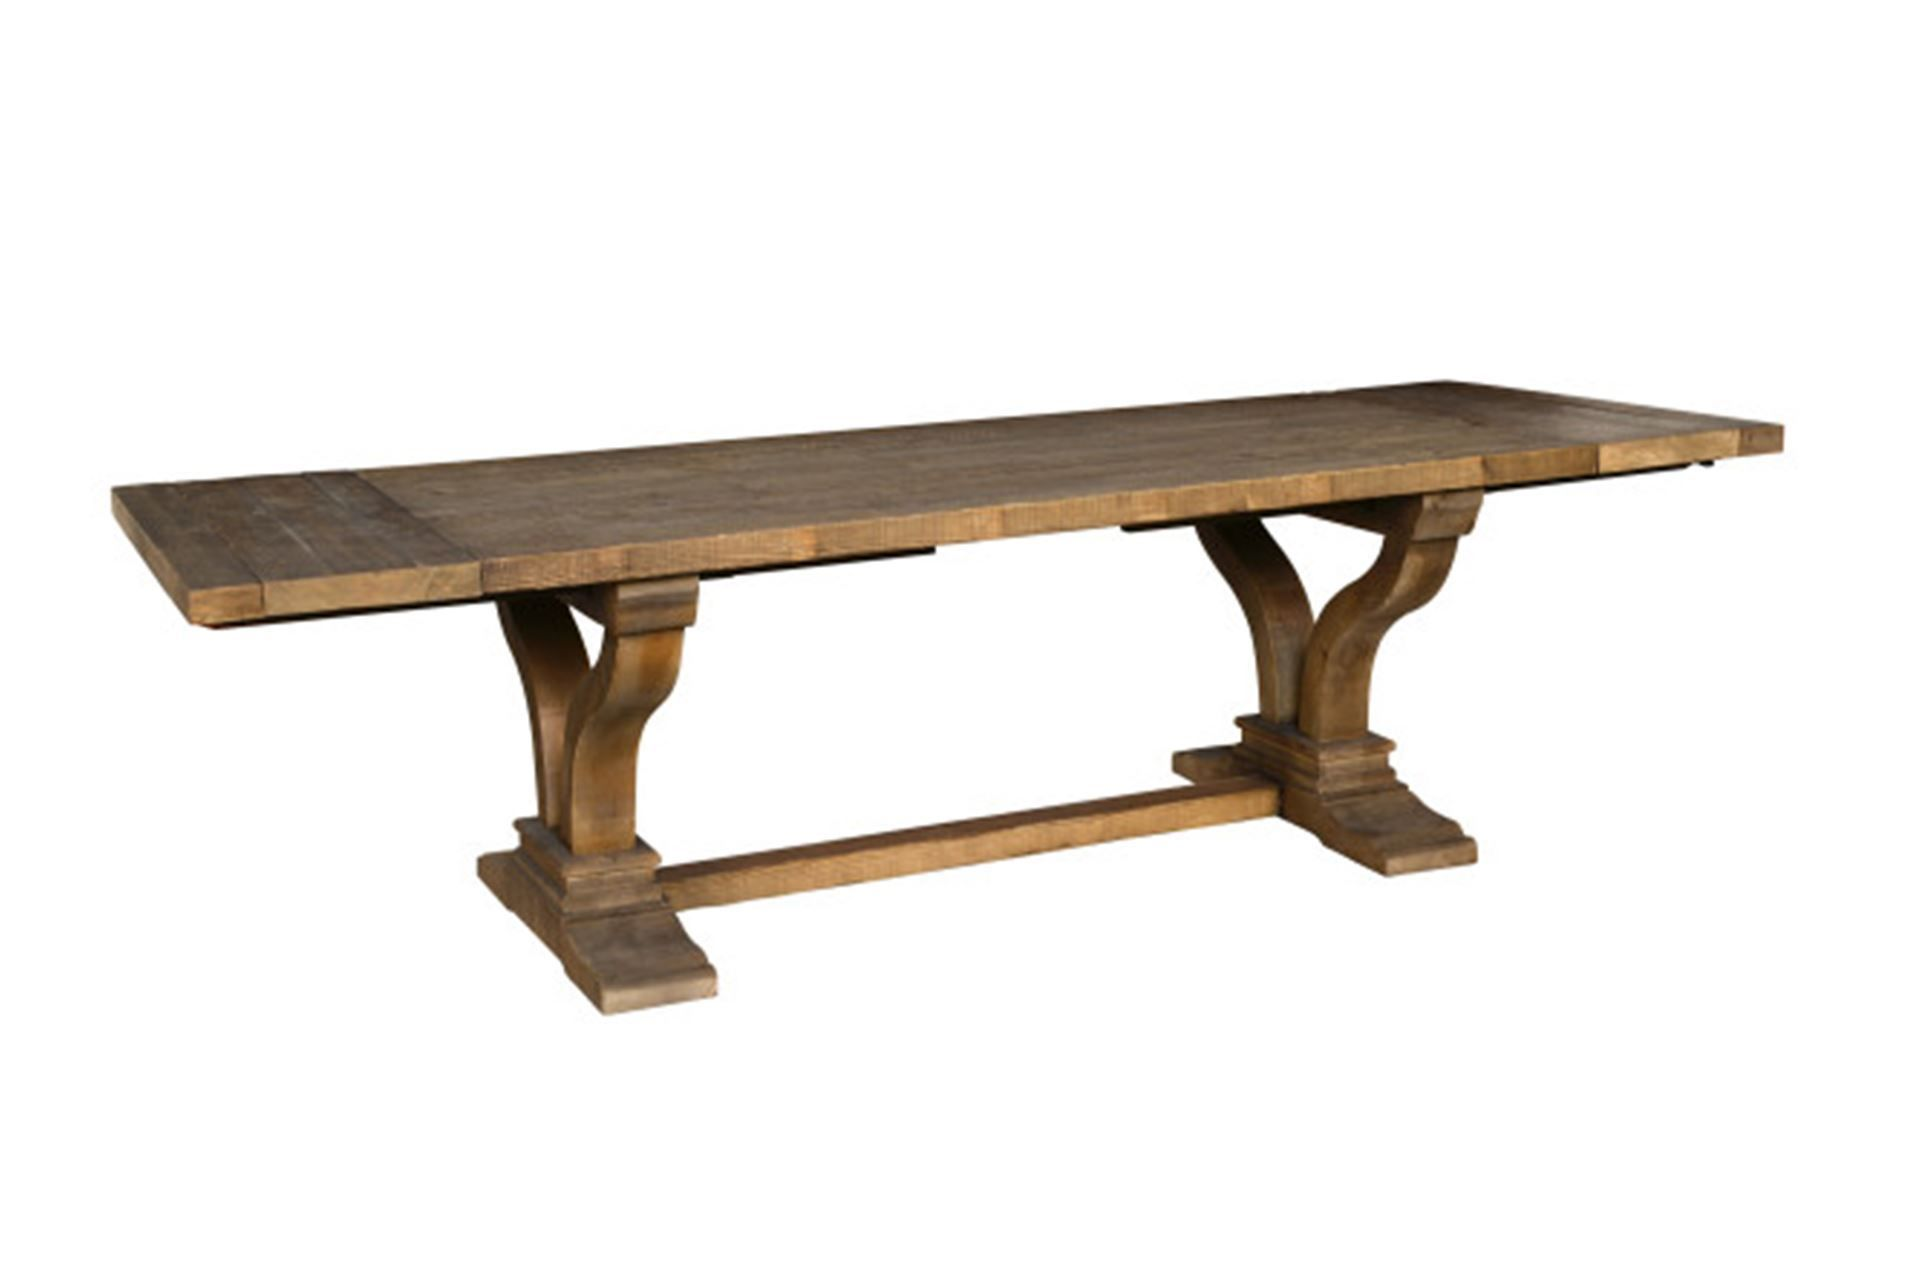 Otb Brown Reclaimed Pine Extension Dining Table | Pine, Dining ...